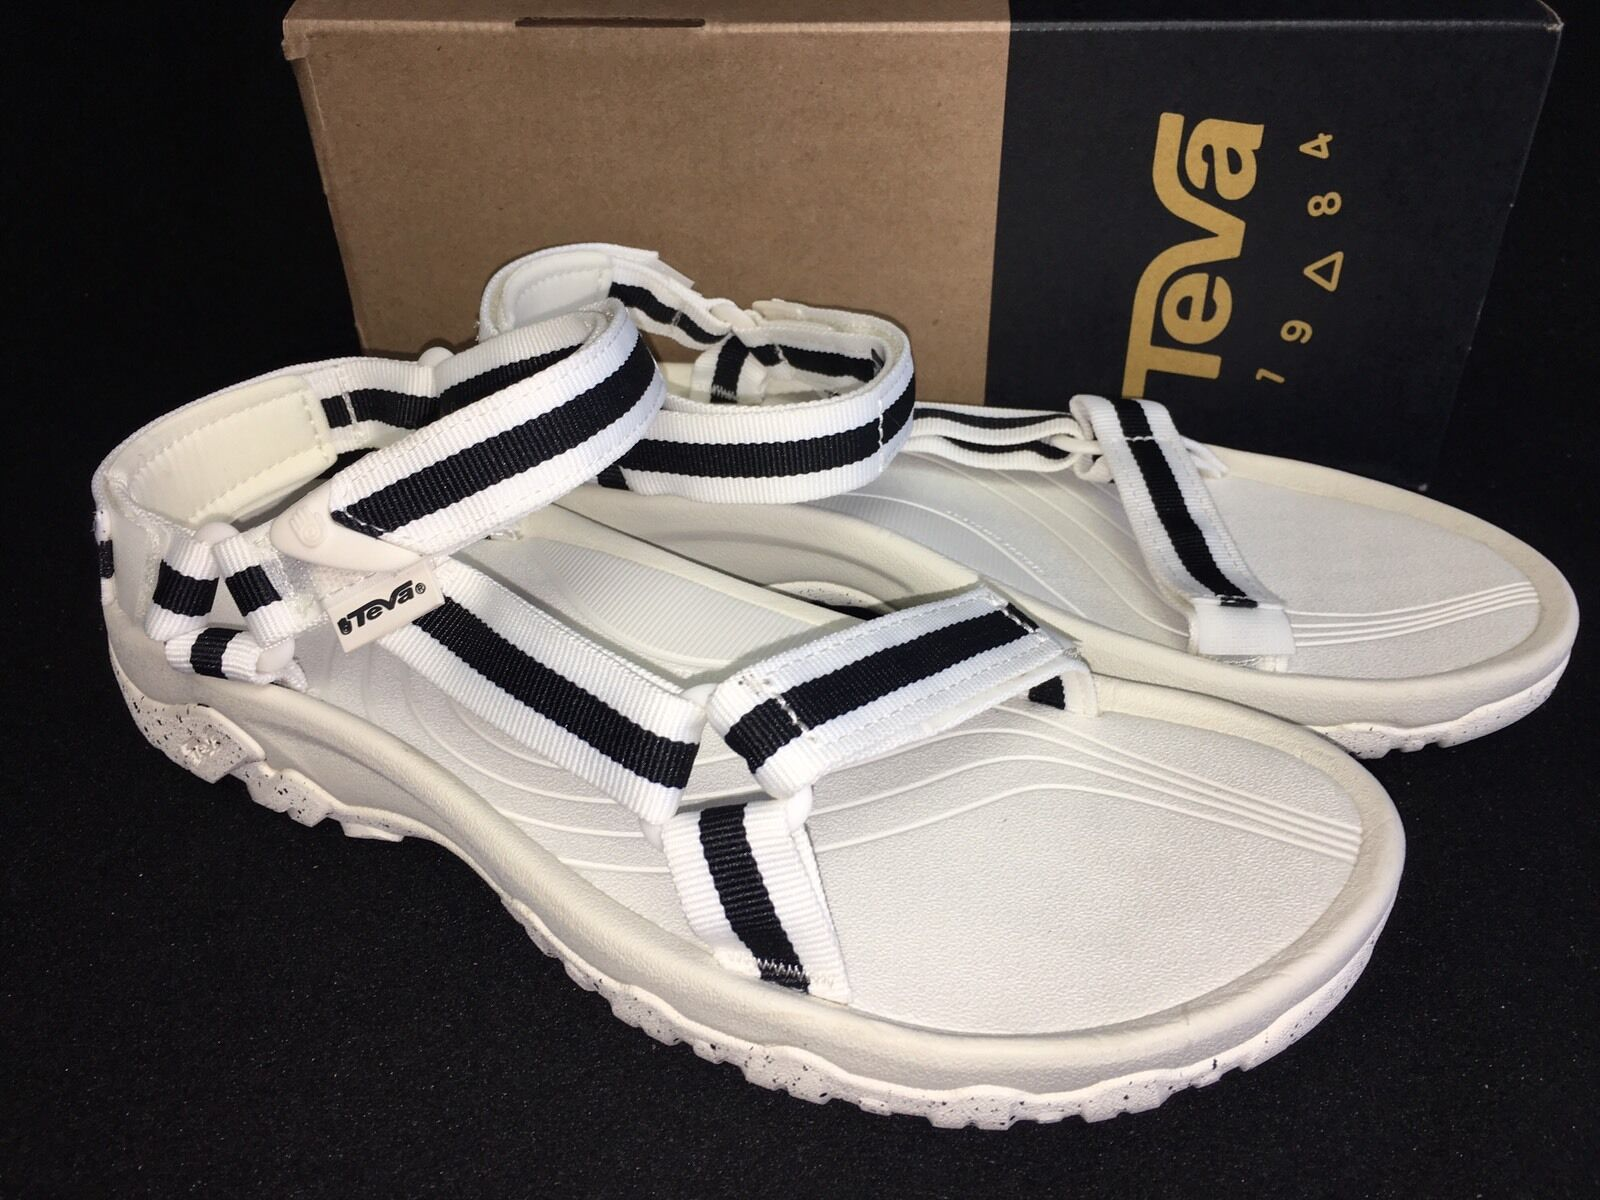 TEVA HURRICANE XLT LILY WHITE BLACK TRAIL SPORTS SANDALS US 11 WOMENS 1013849